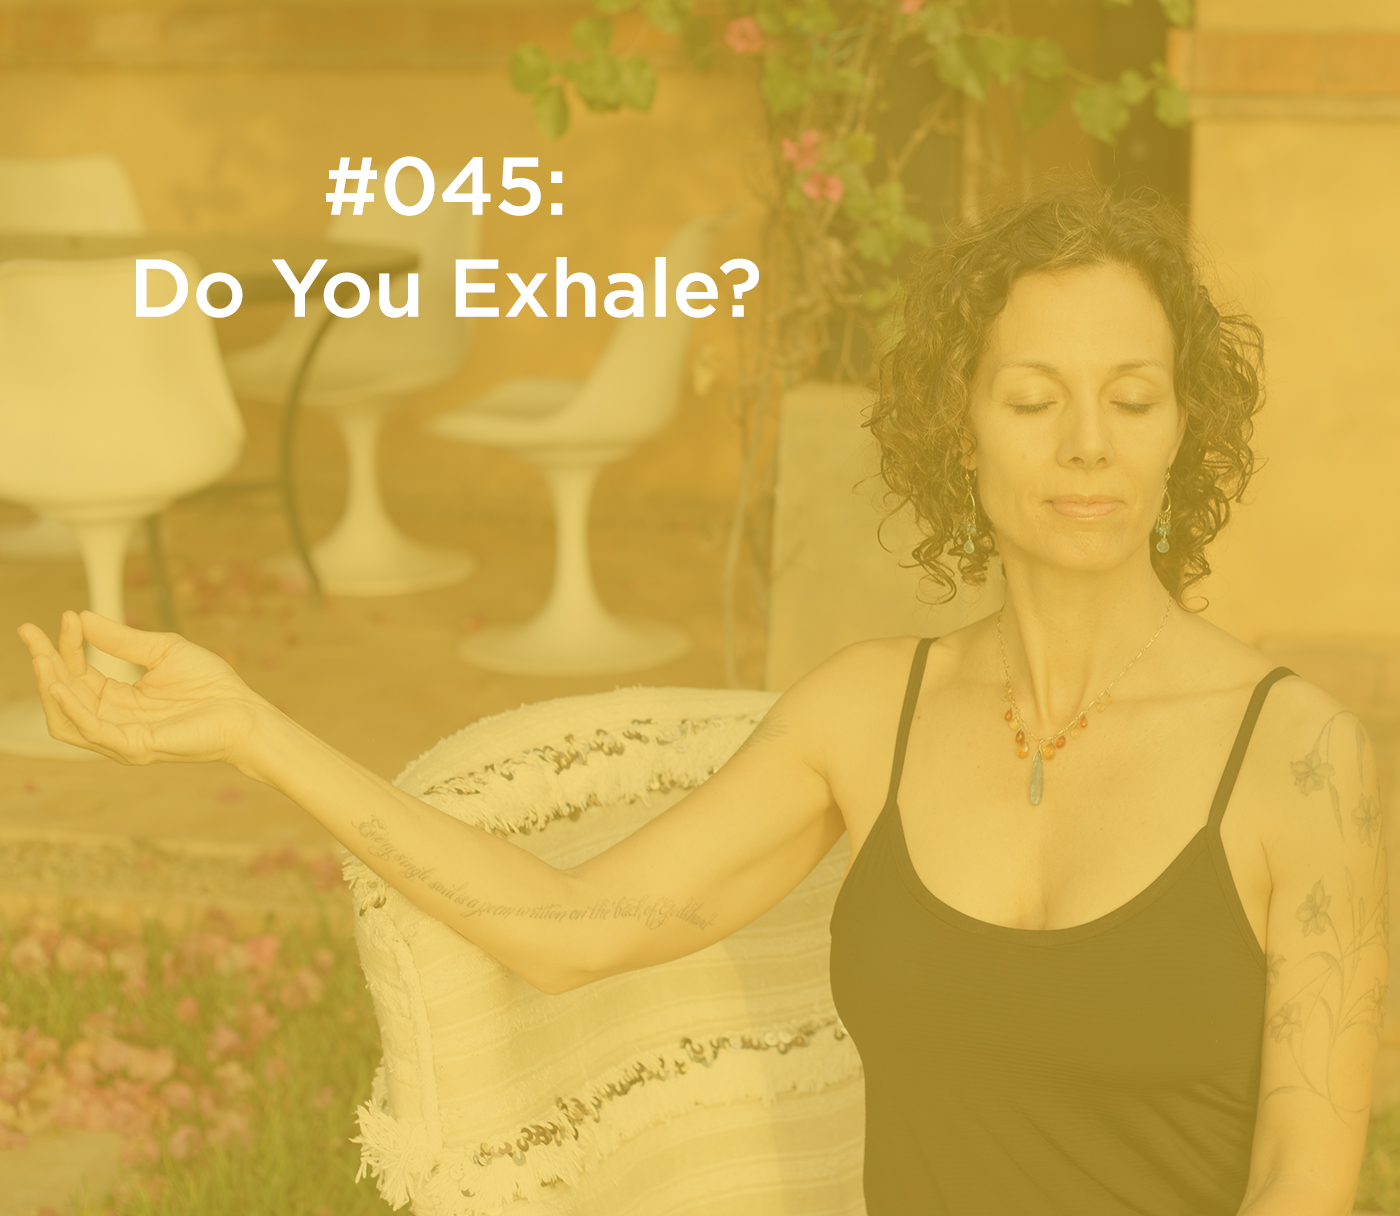 Do You Exhale?